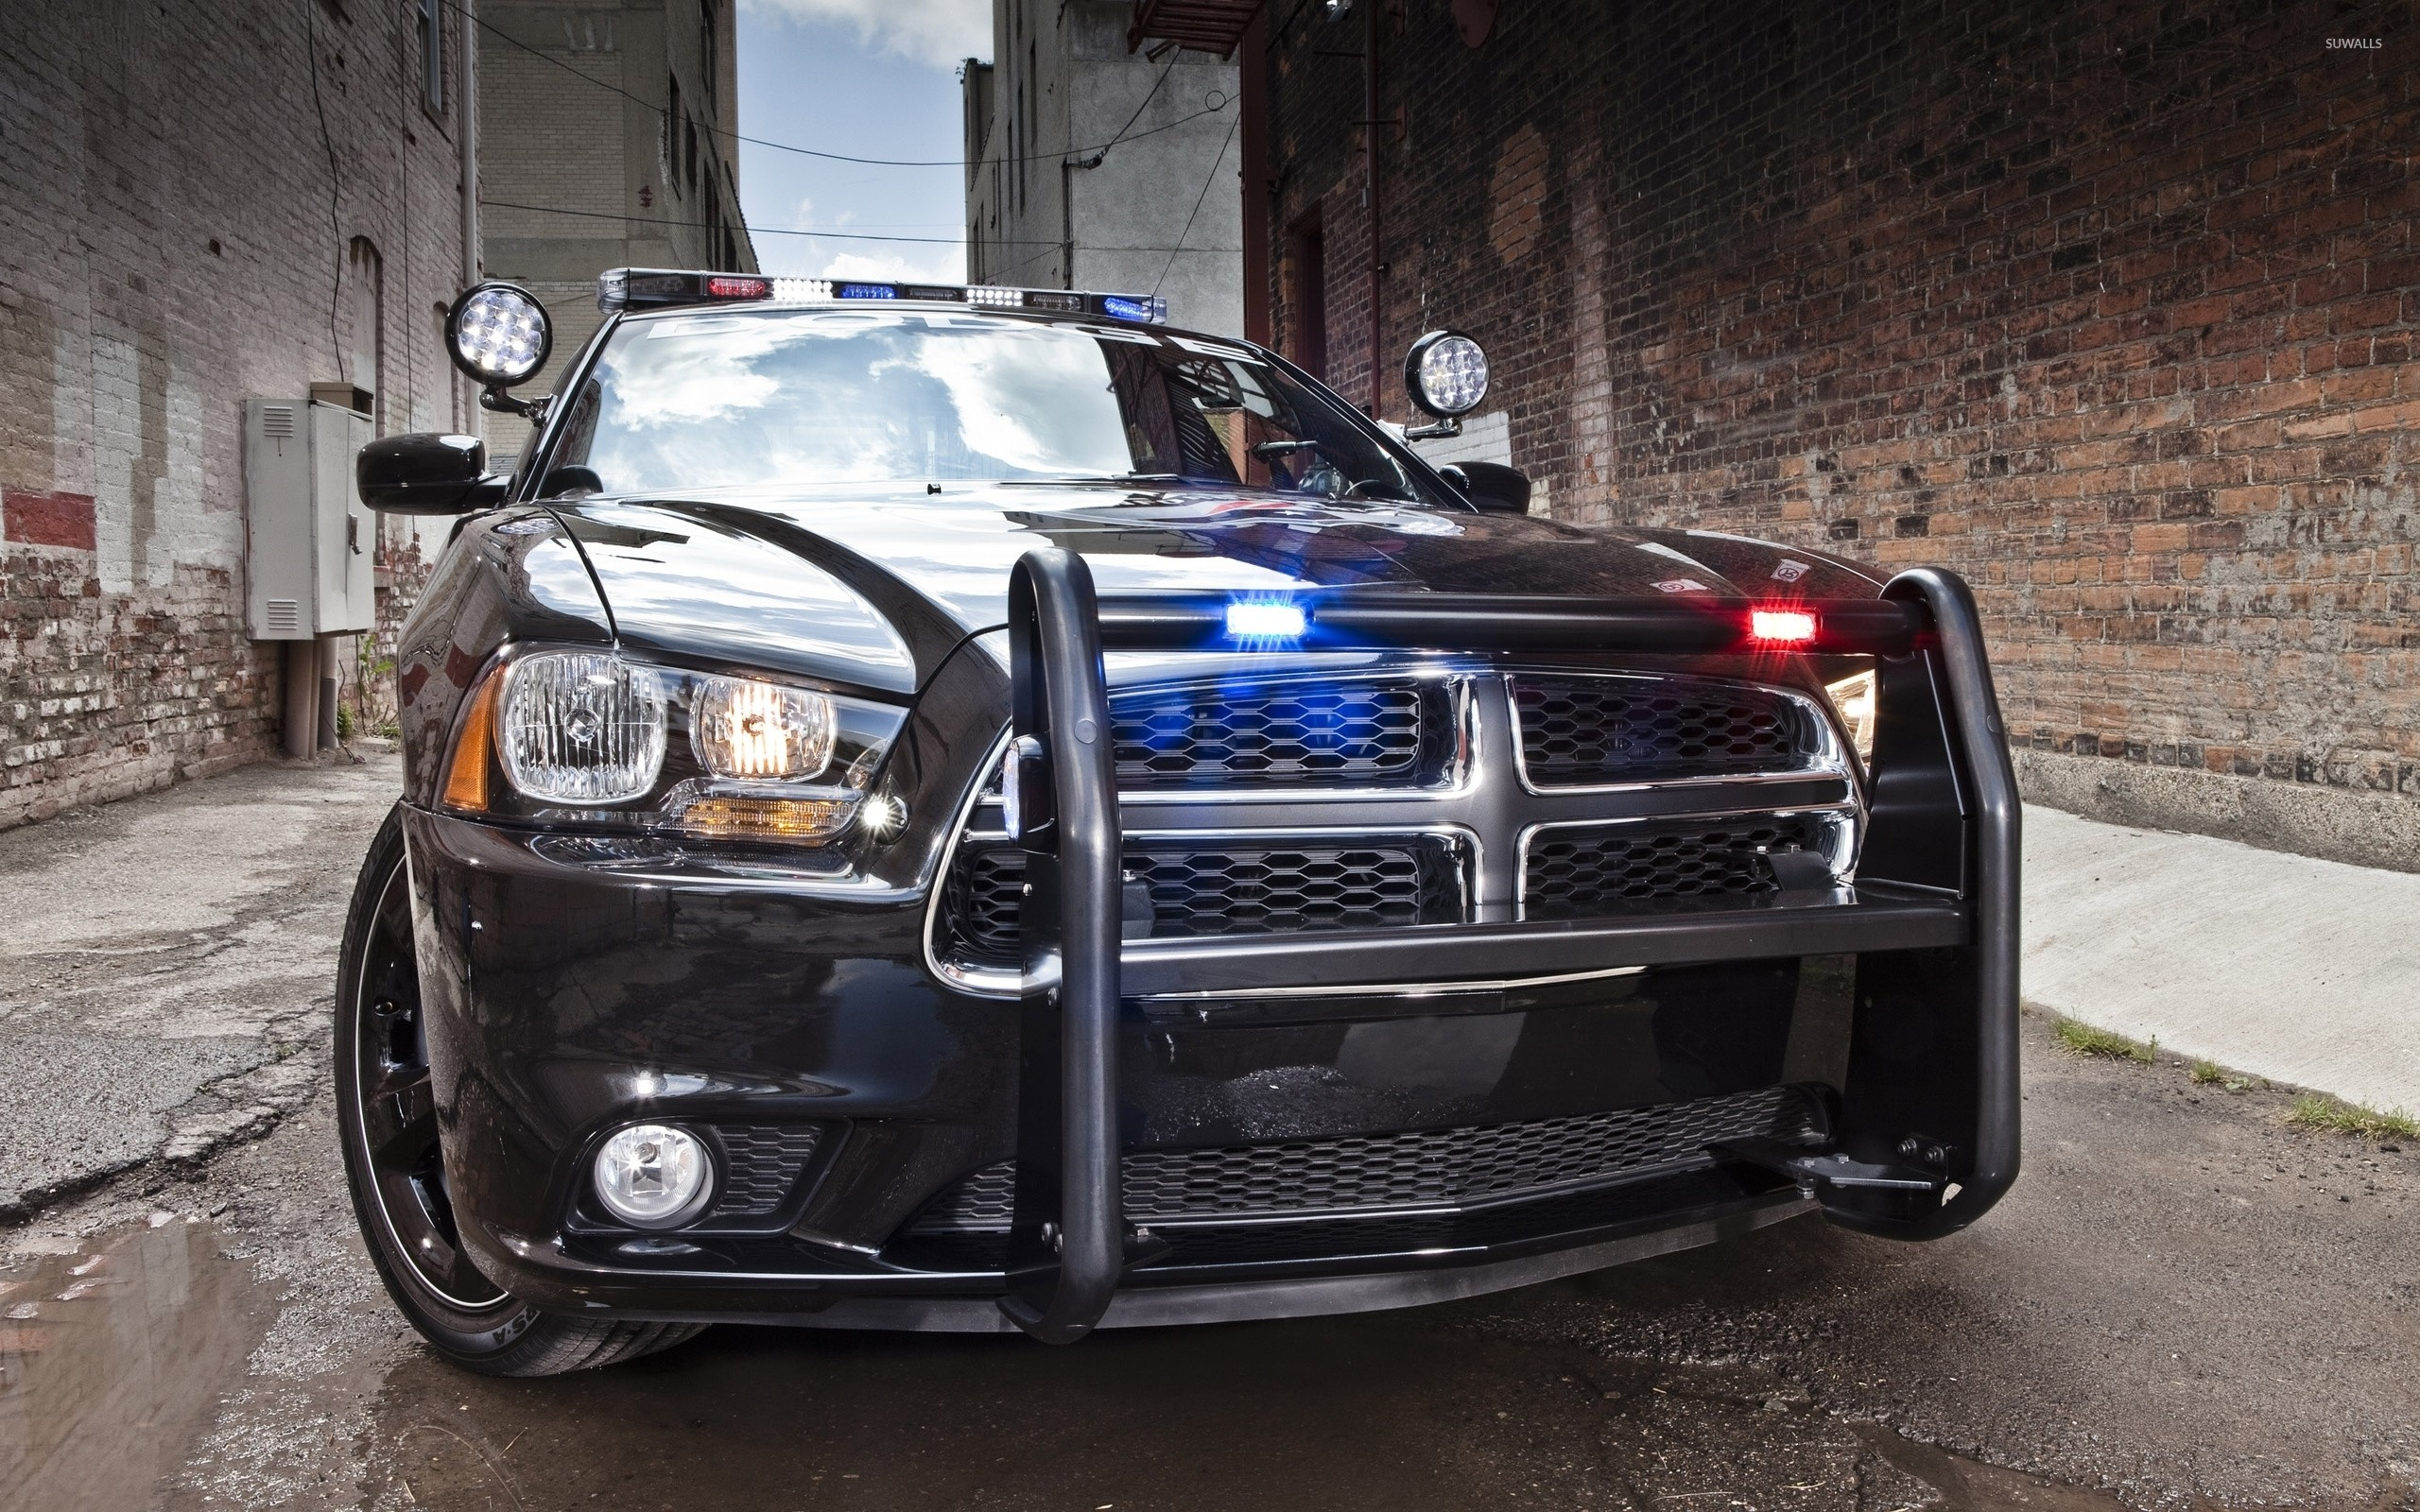 Dodge Charger police car [2] wallpaper